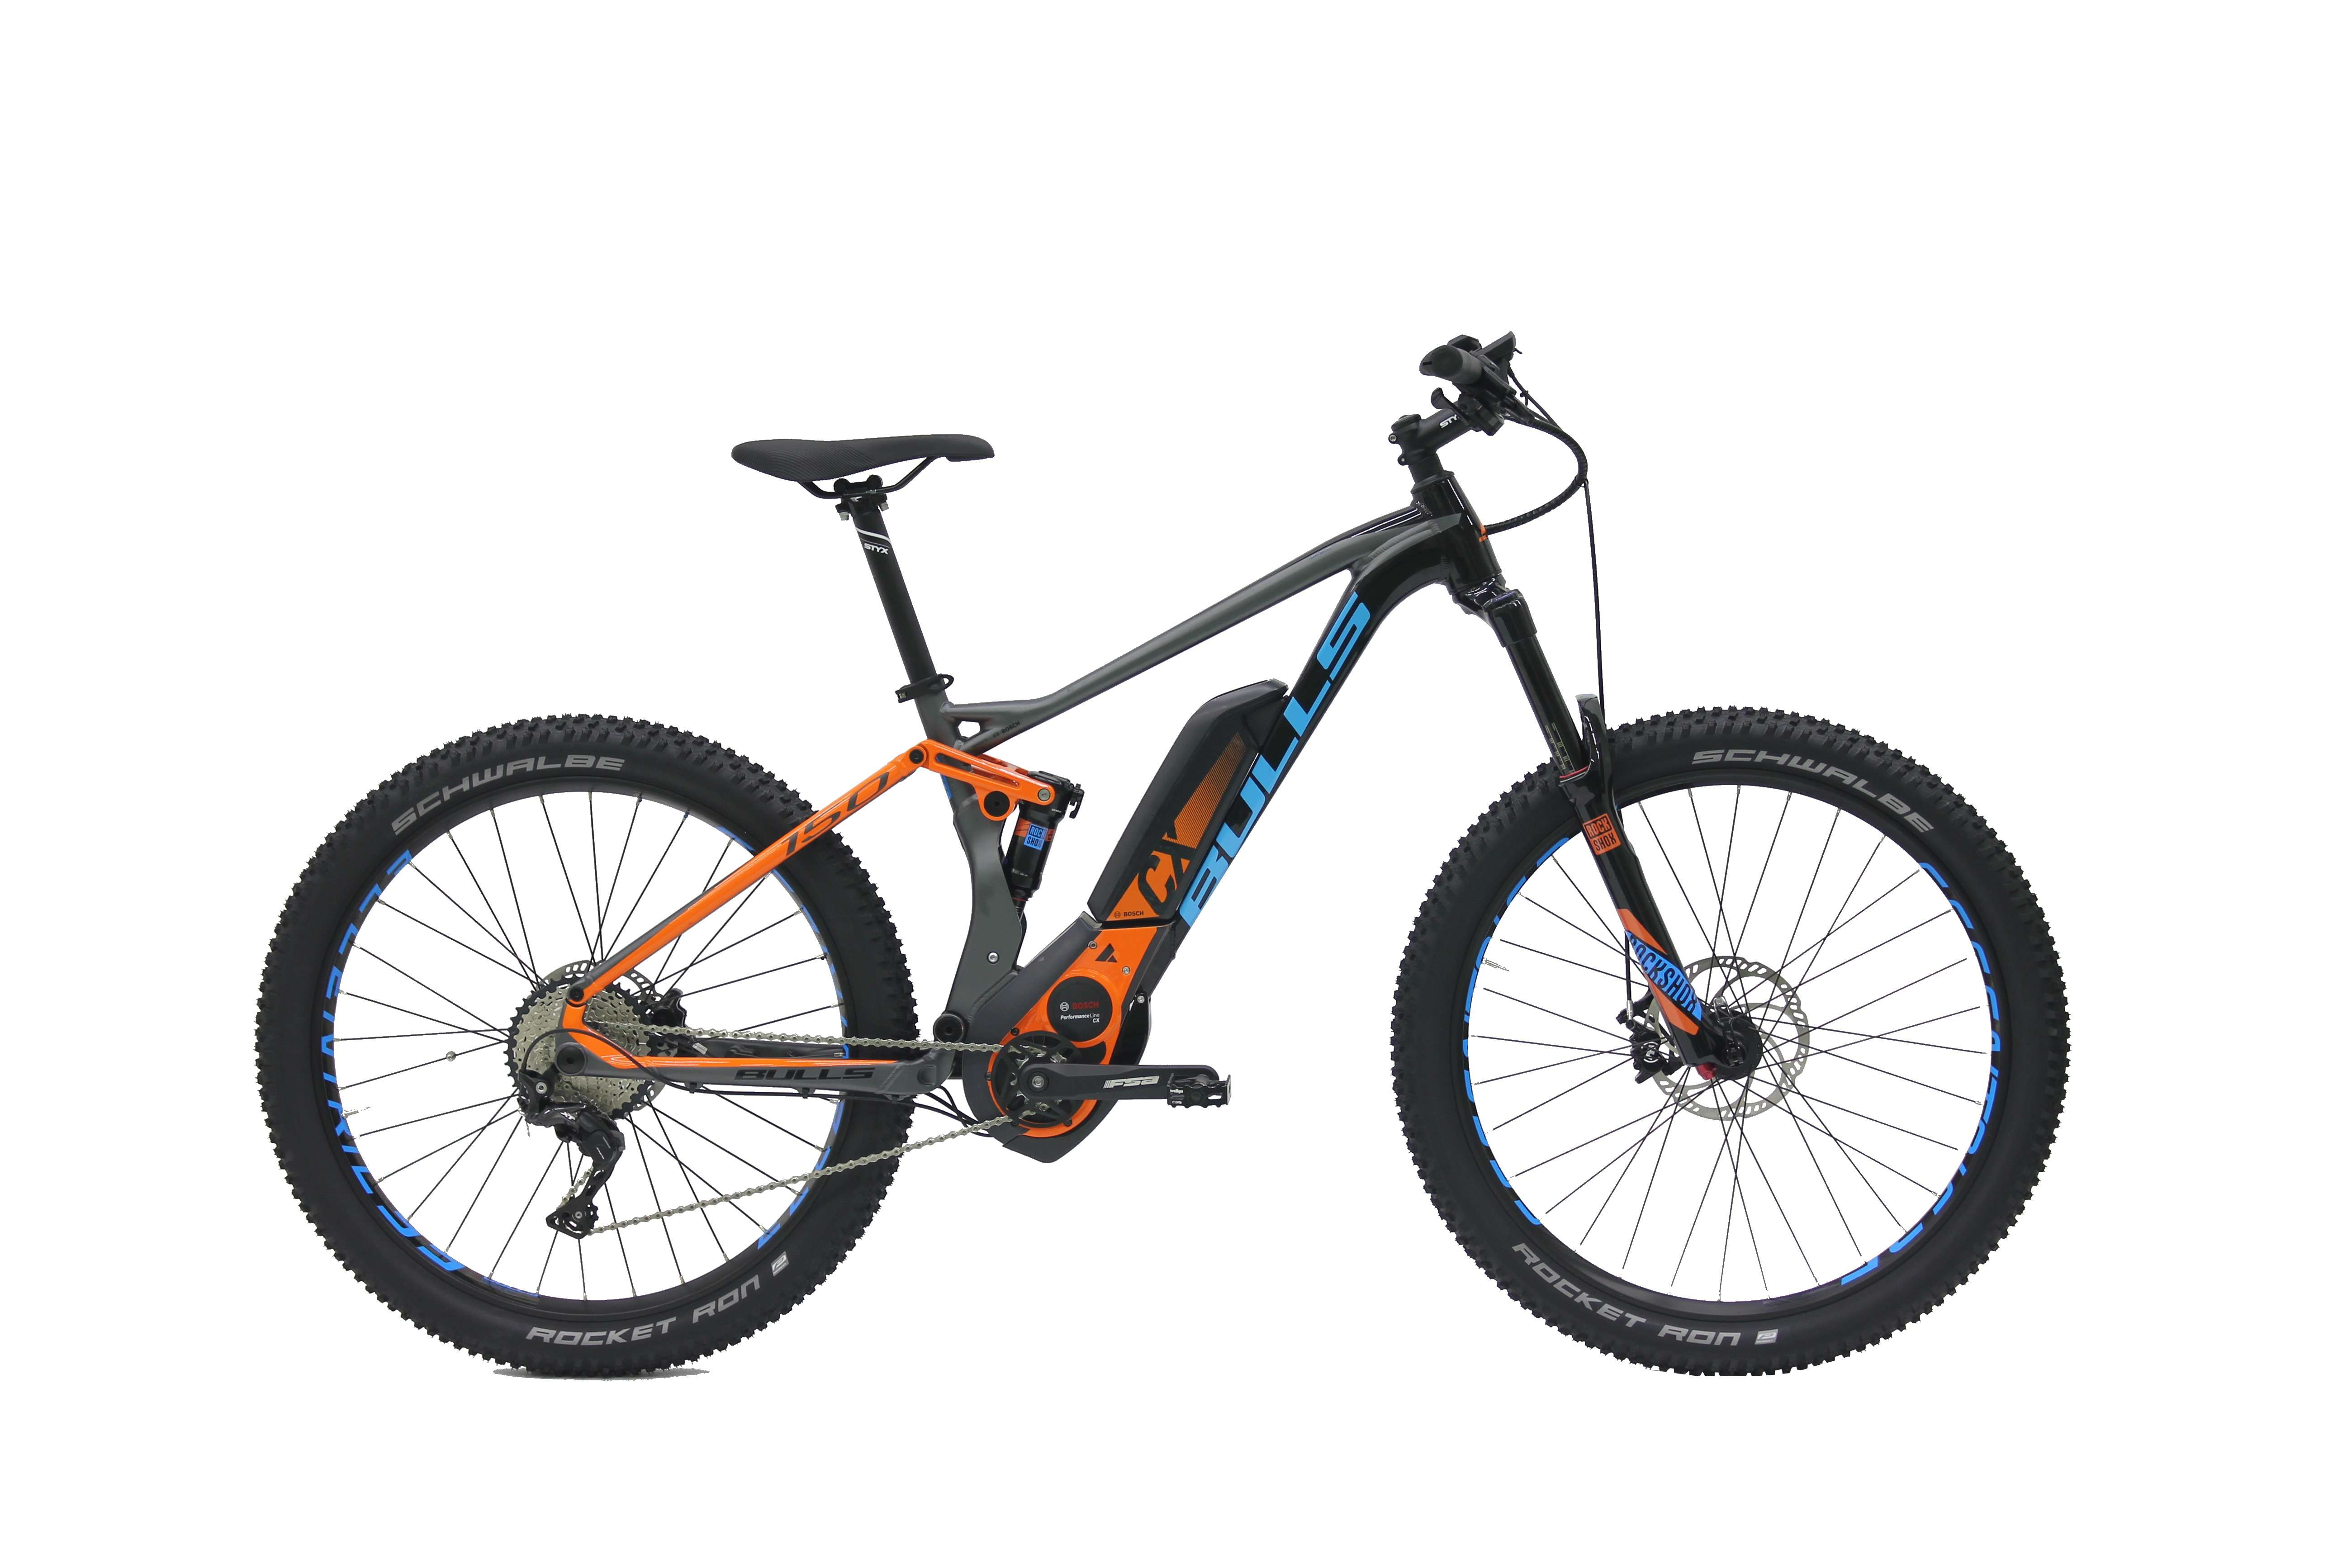 Bulls six50+ E FS 3 Electric bike dealers Global